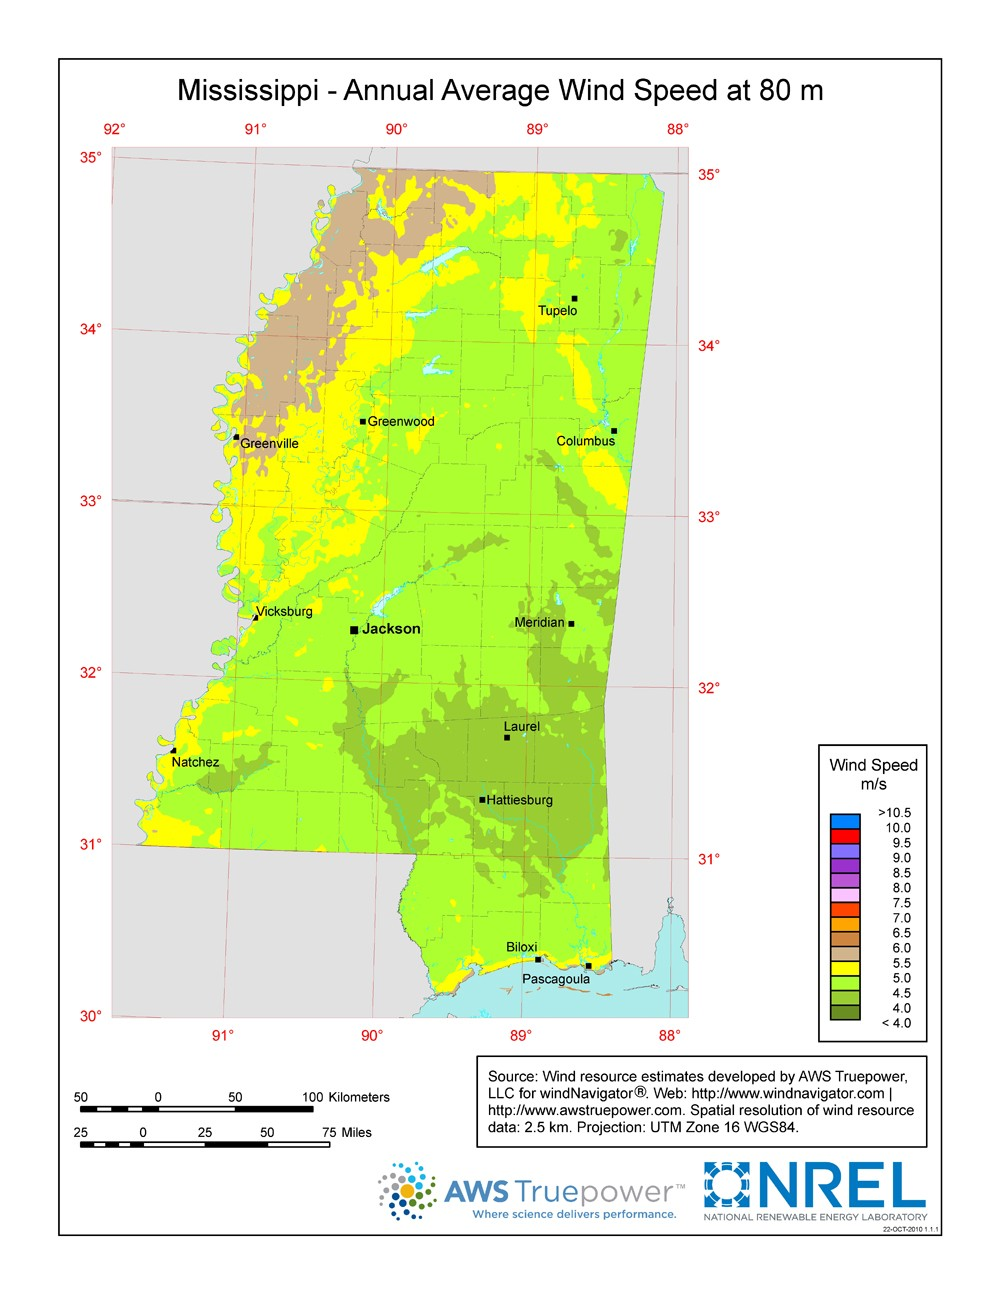 Mississippi wind resource map.